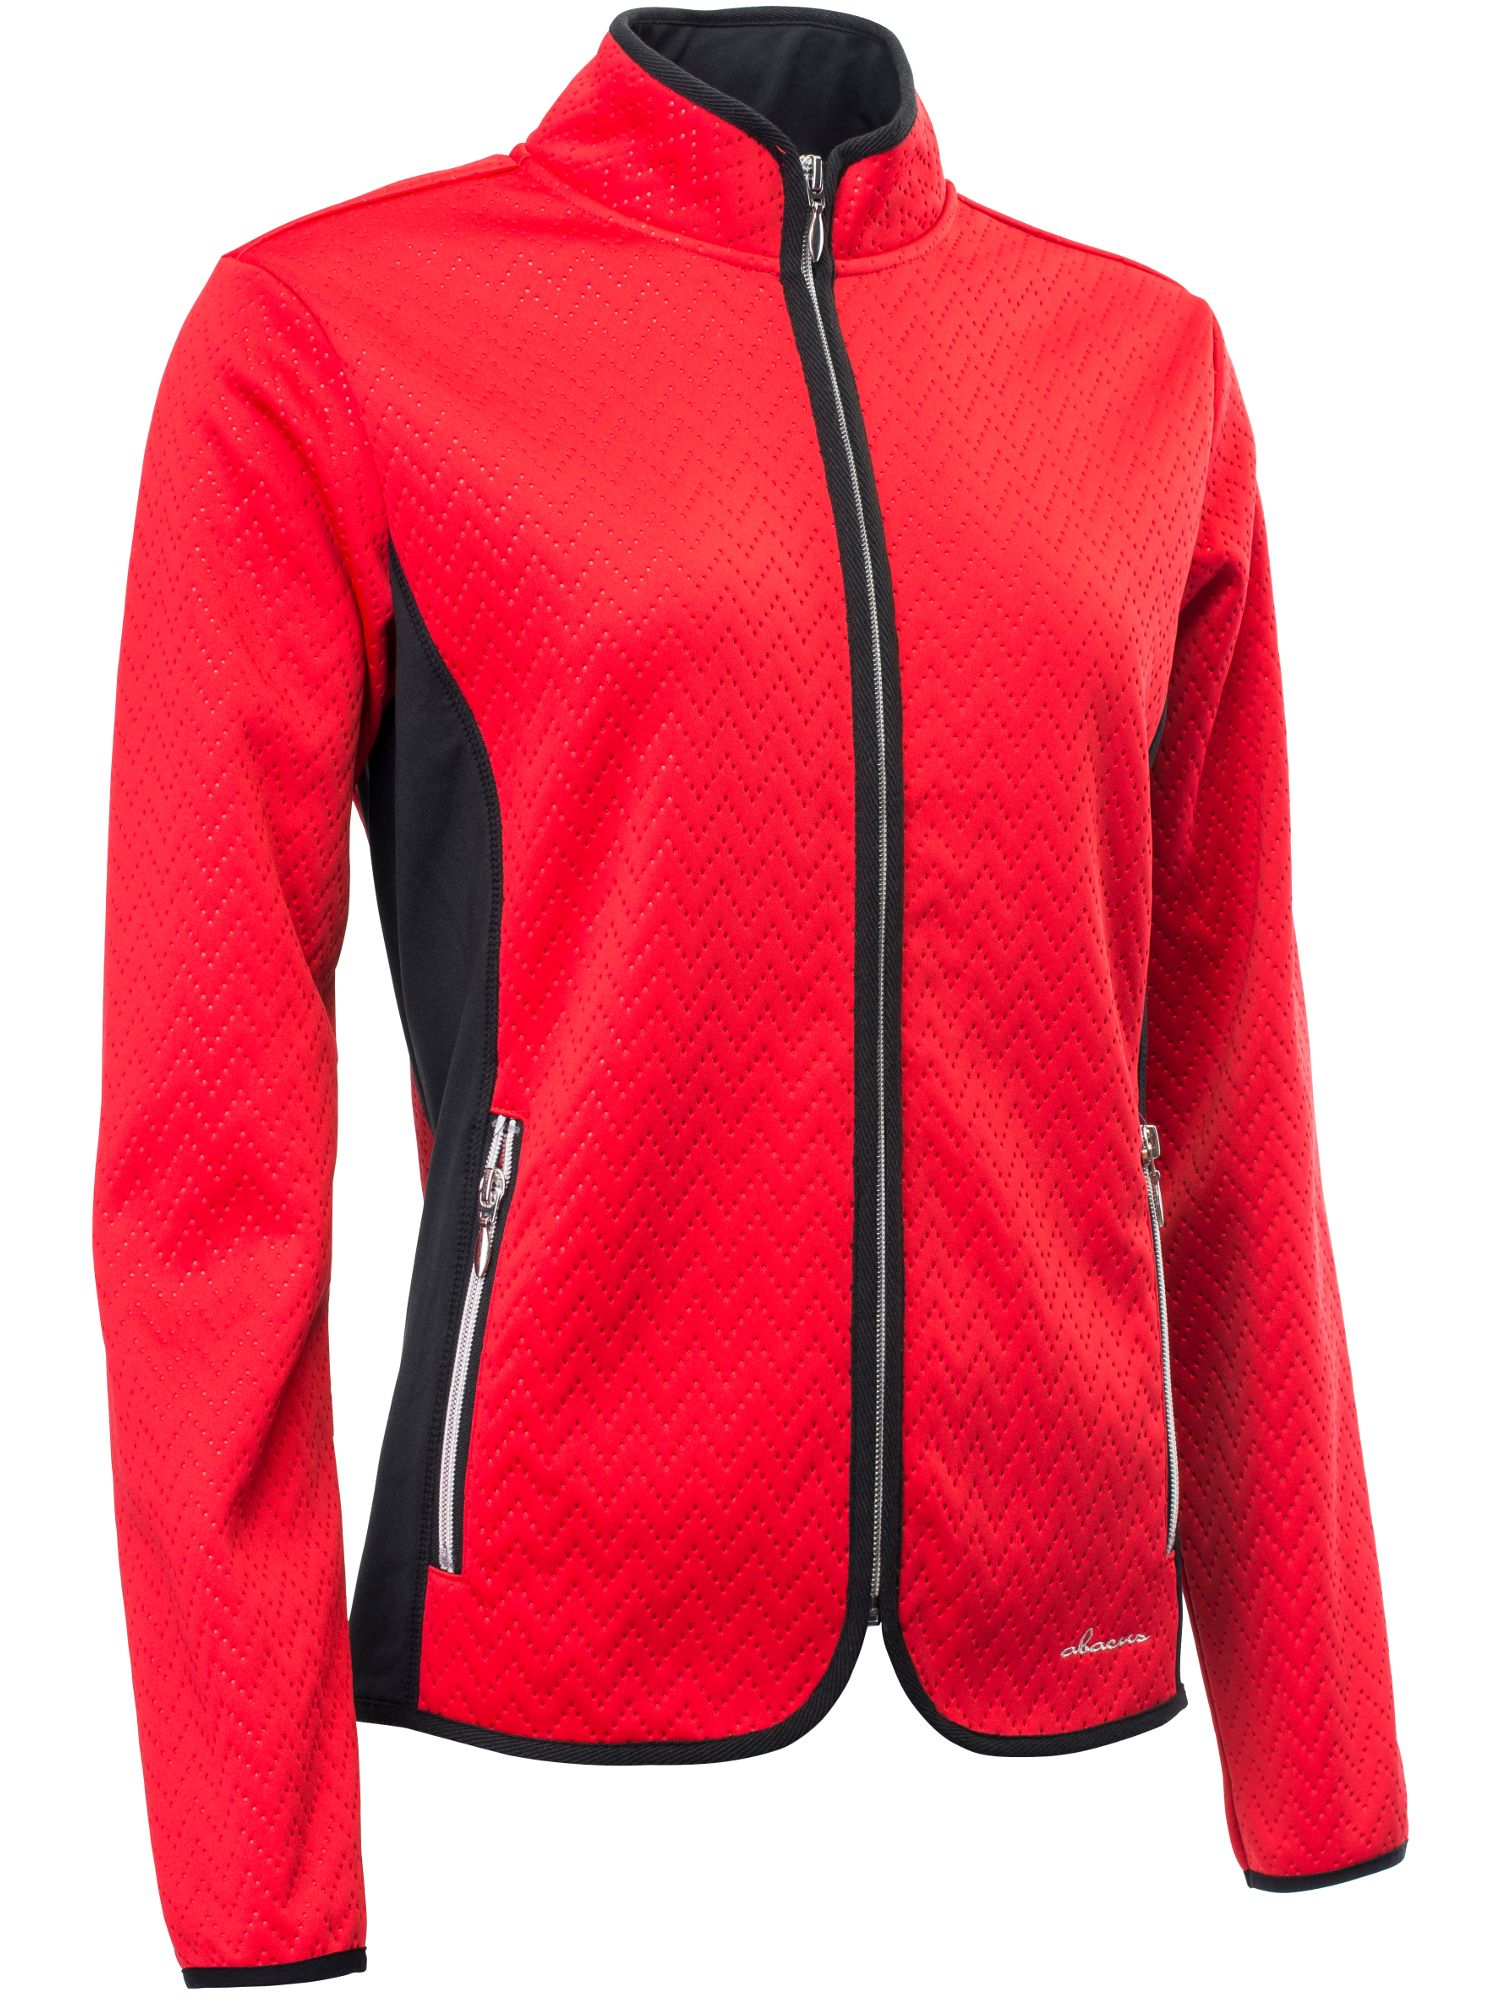 Abacus Abbey Fleece Jacket, Red